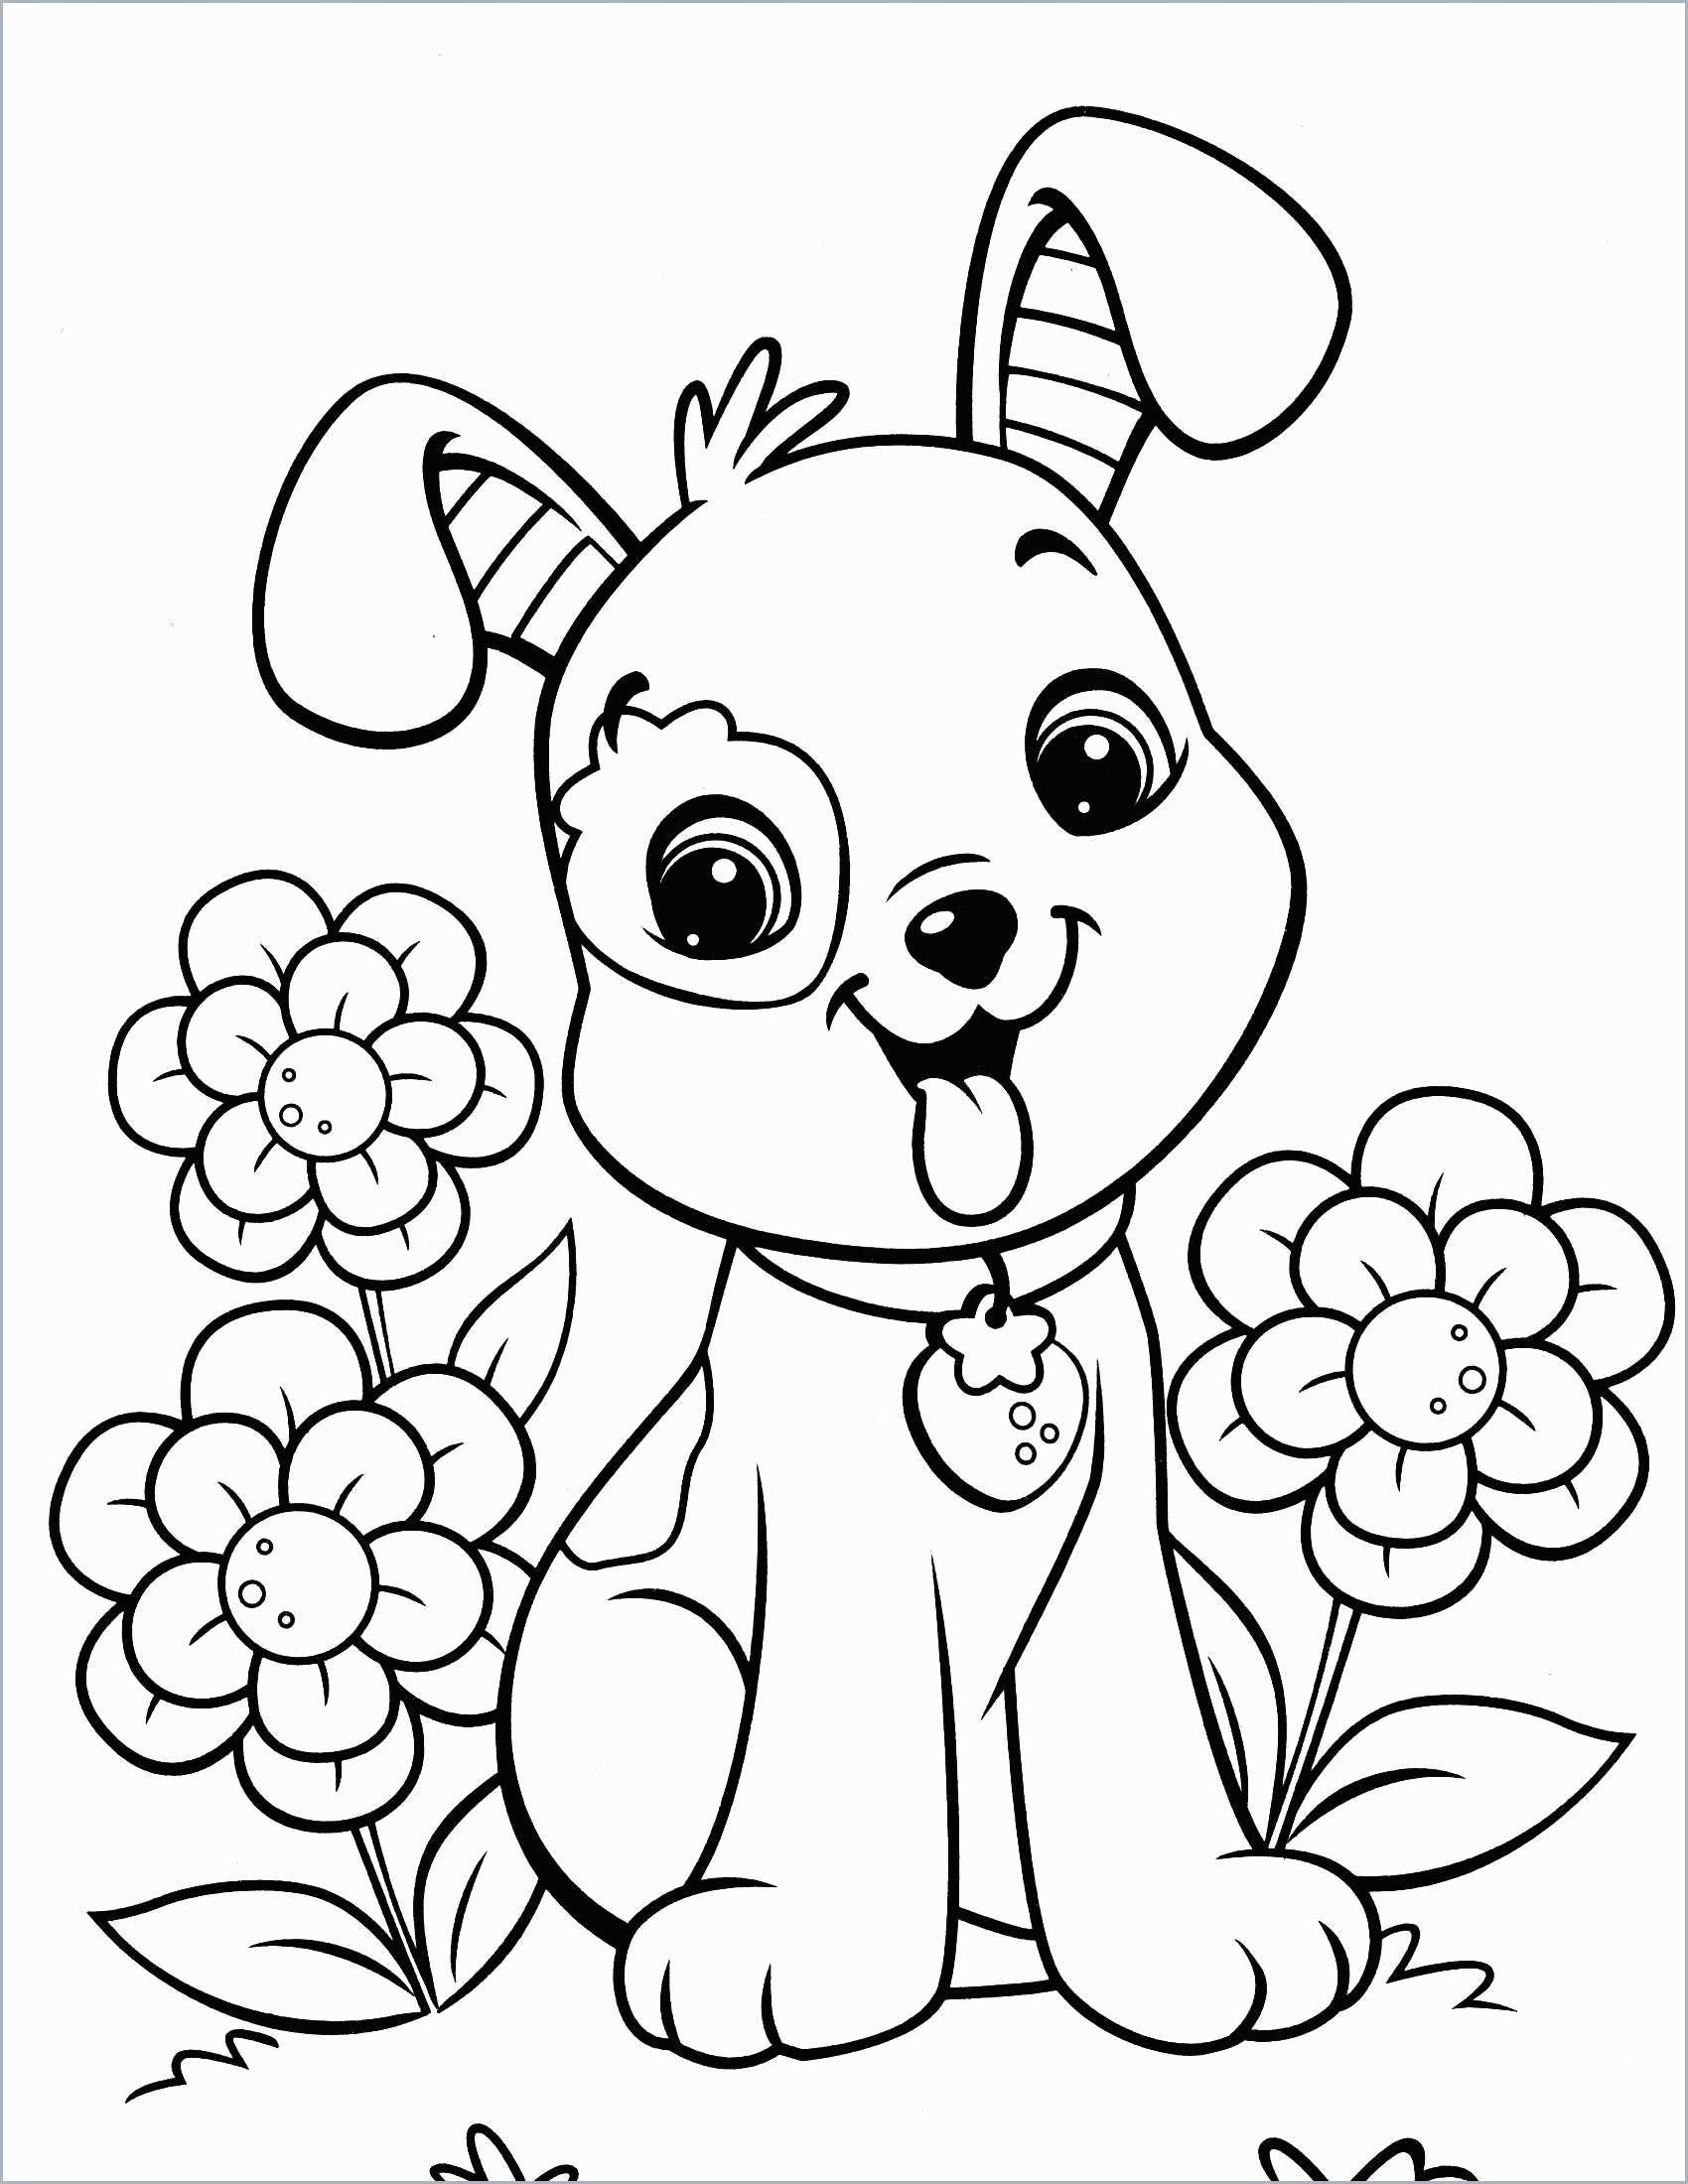 Printable Puppy Coloring Pages Ideas   Animal Coloring Pages